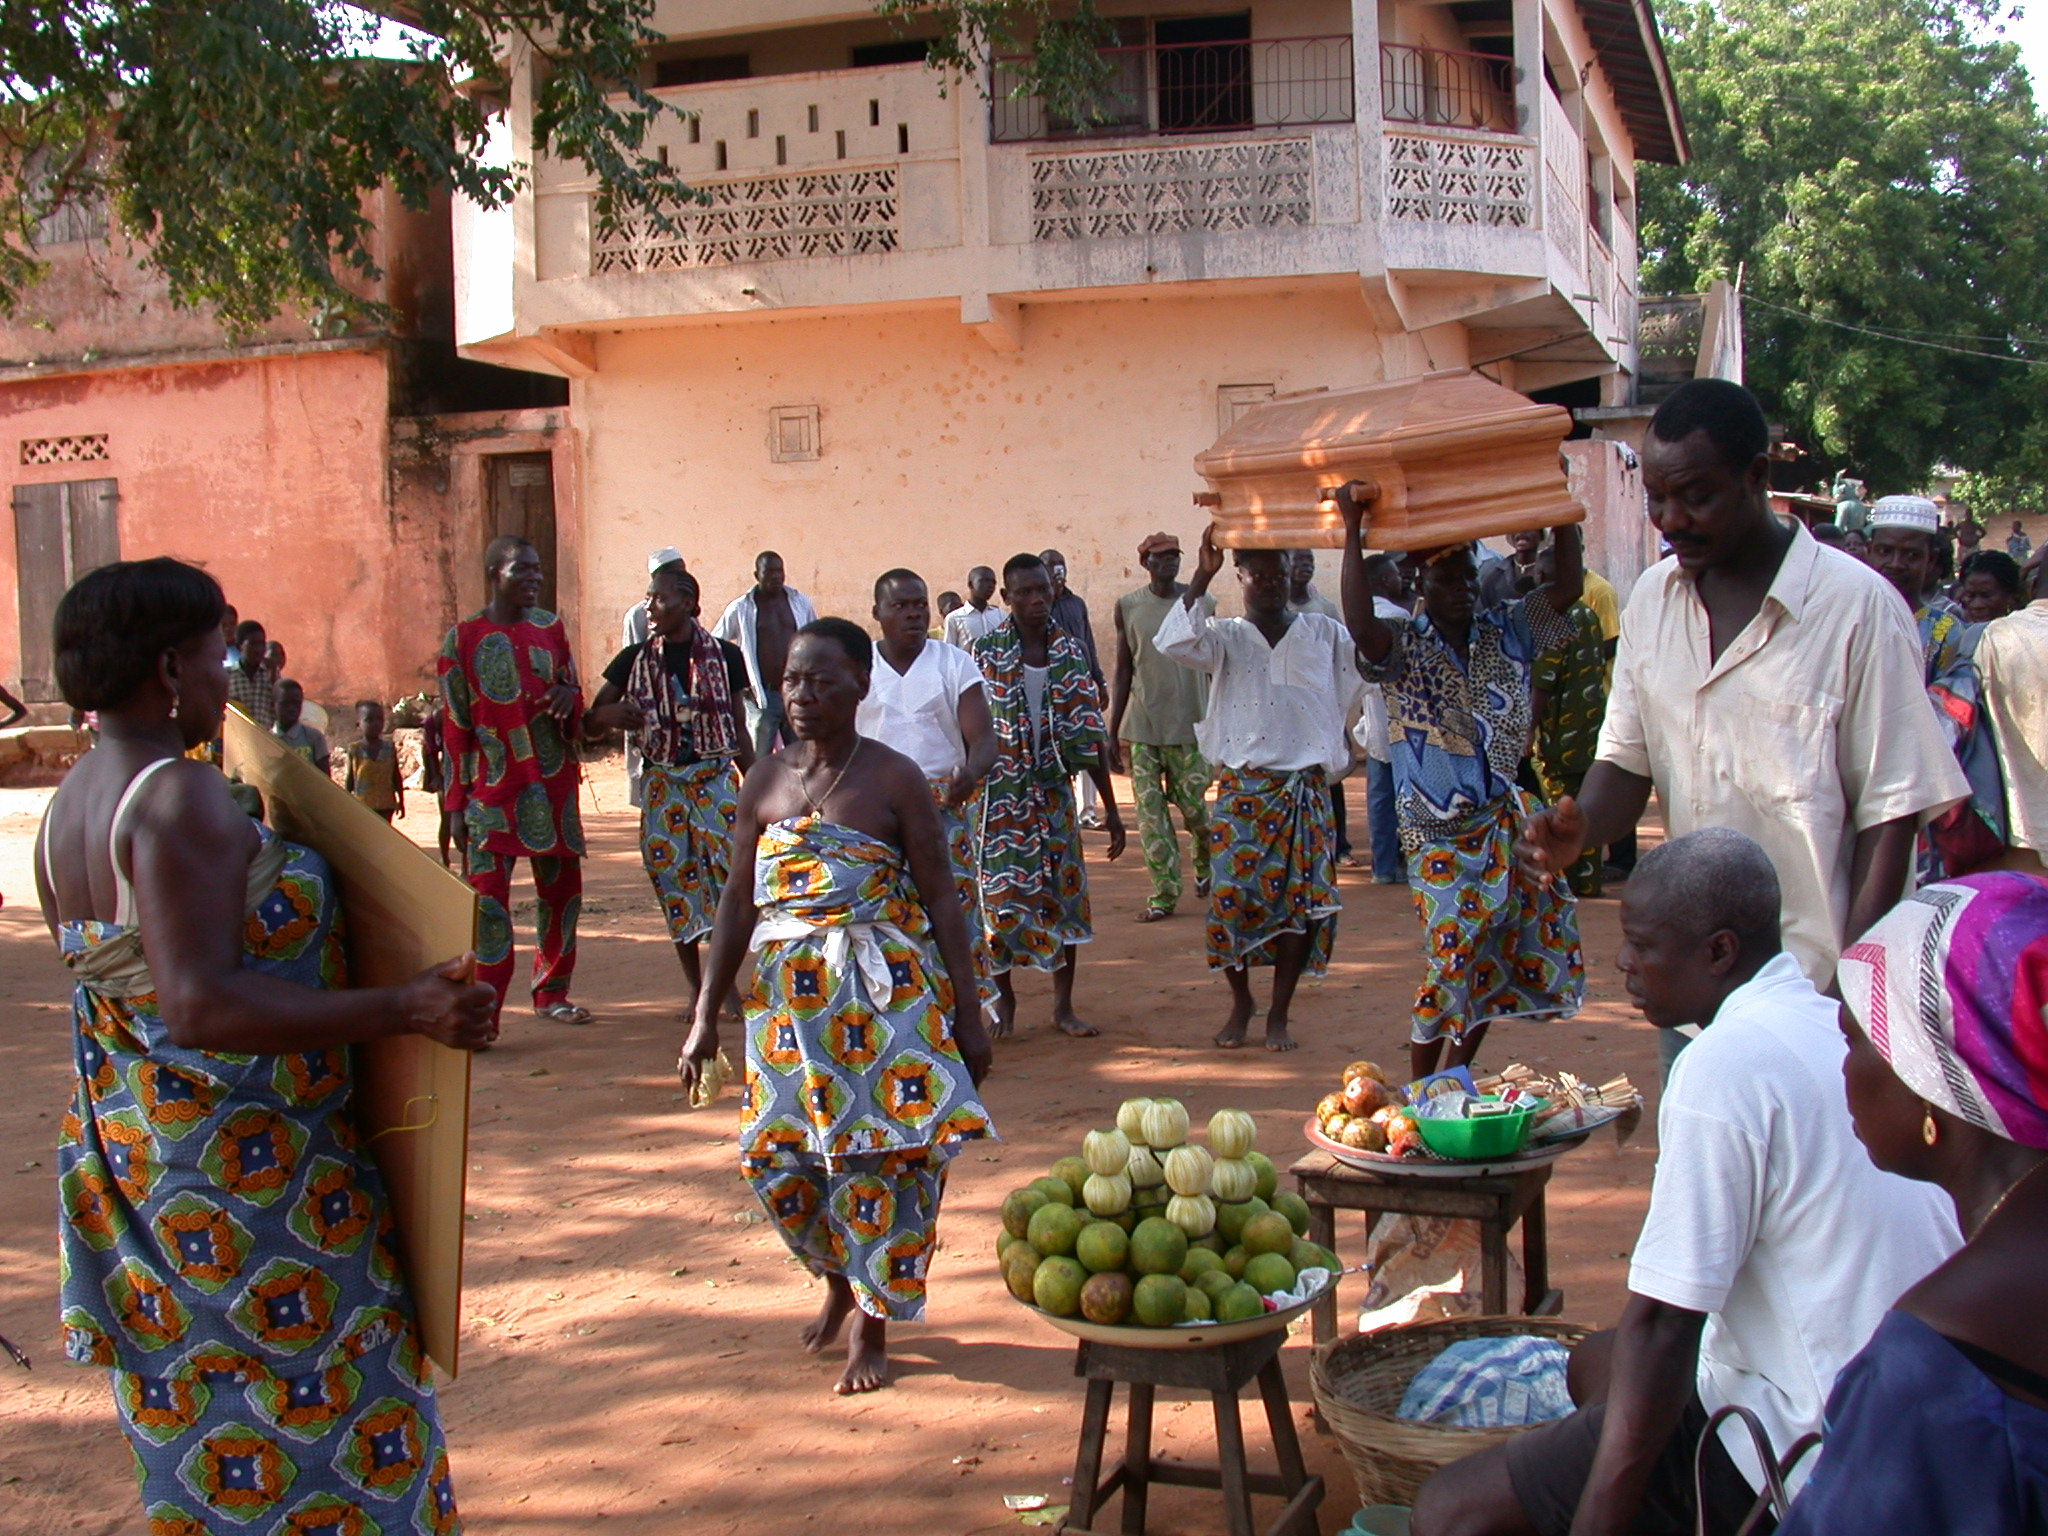 Funeral Procession, Ouidah, Benin